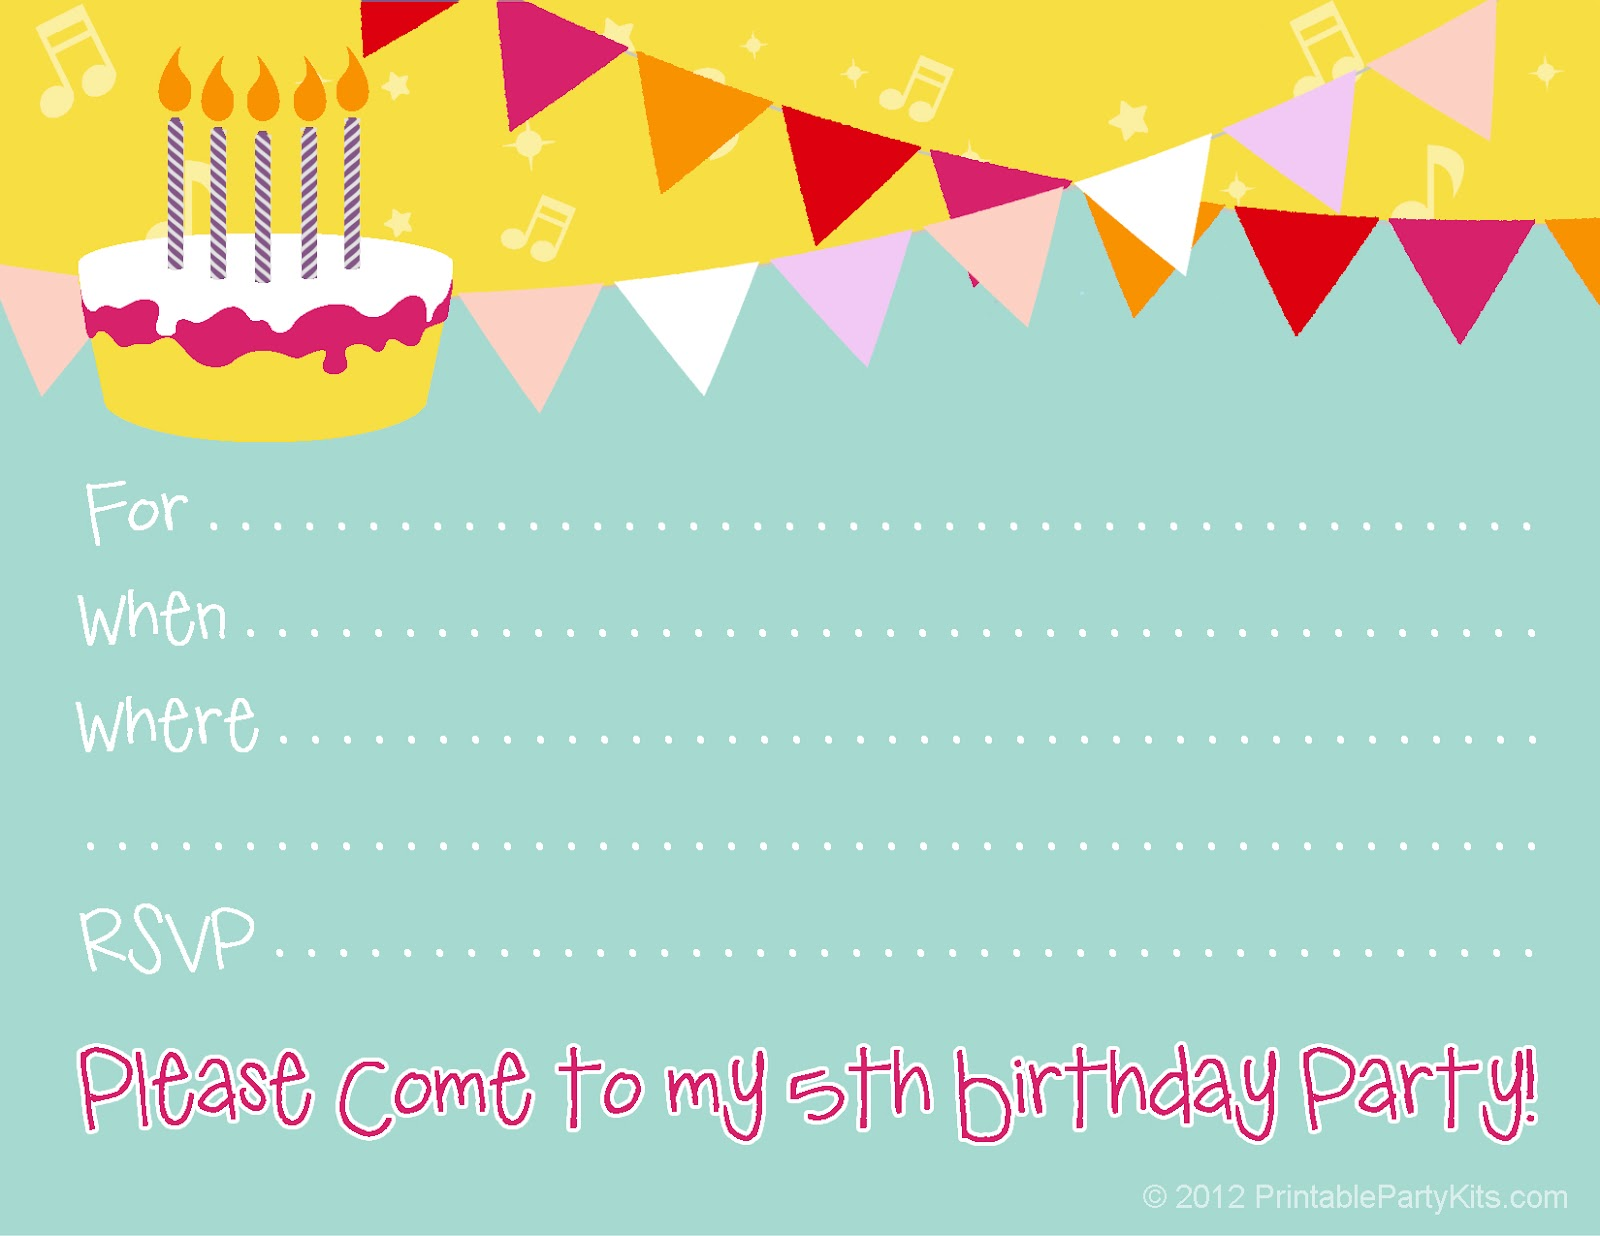 birthday invitation wallpaper ; Stunning-Free-Printable-Birthday-Party-Invitations-Which-You-Need-To-Make-Birthday-Party-Invitation-Template